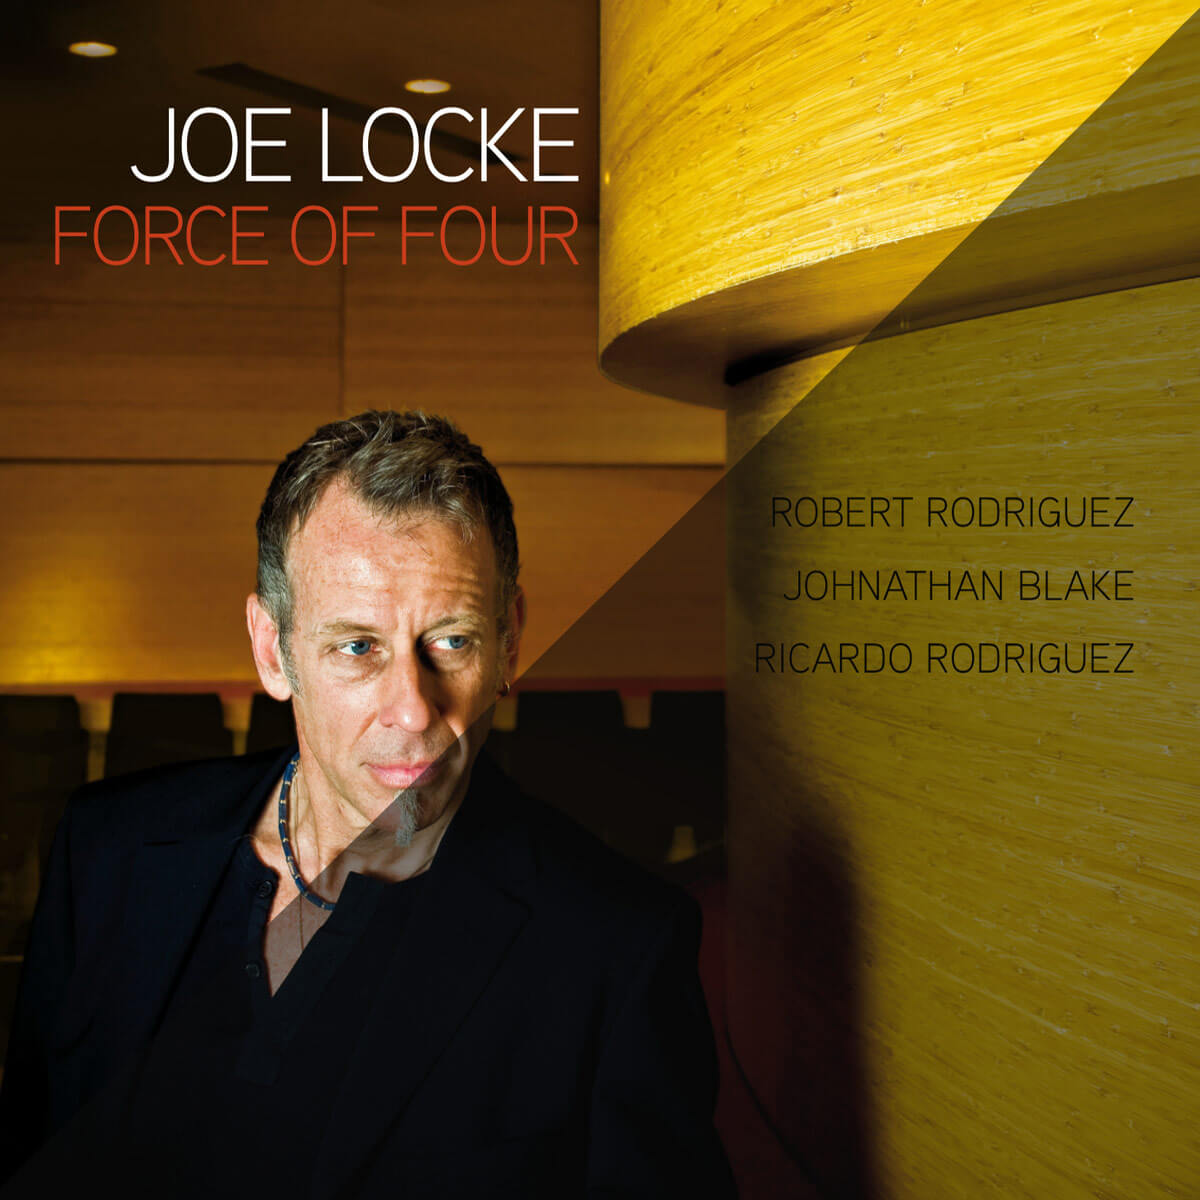 Joe Locke - Force Of Four single